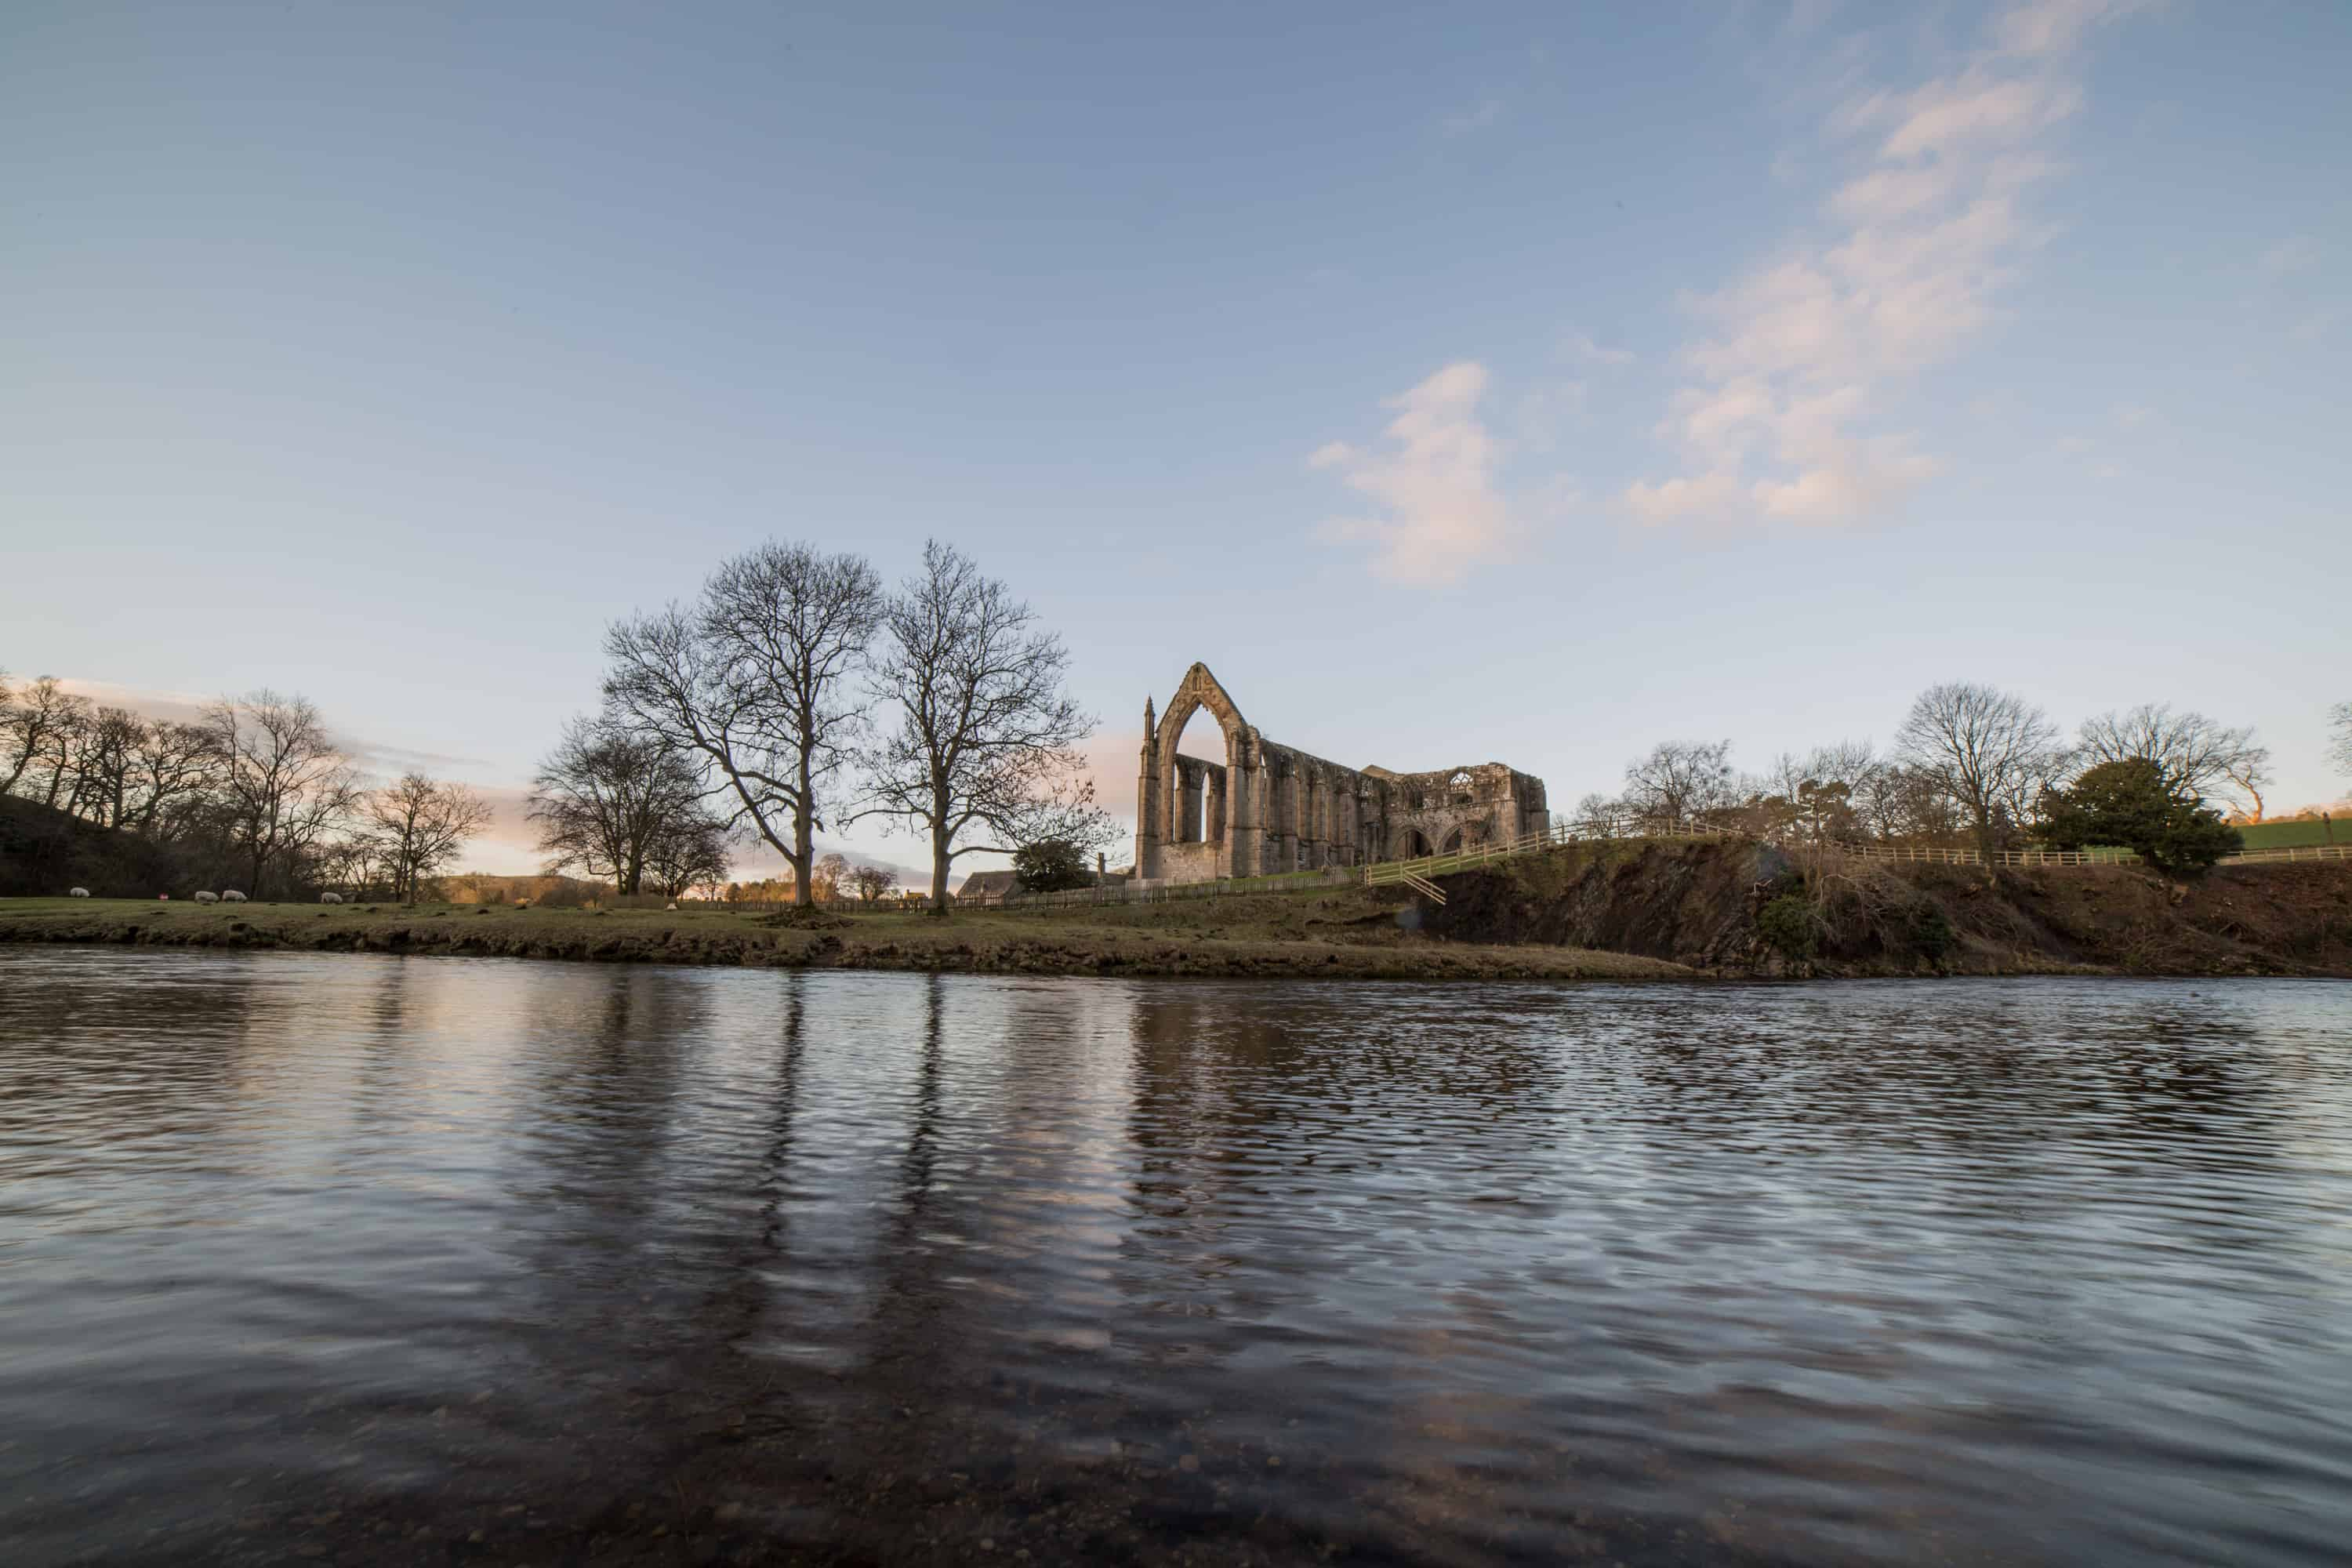 River Wharf & Abbey Priory, Bolton Abbey, Skipton